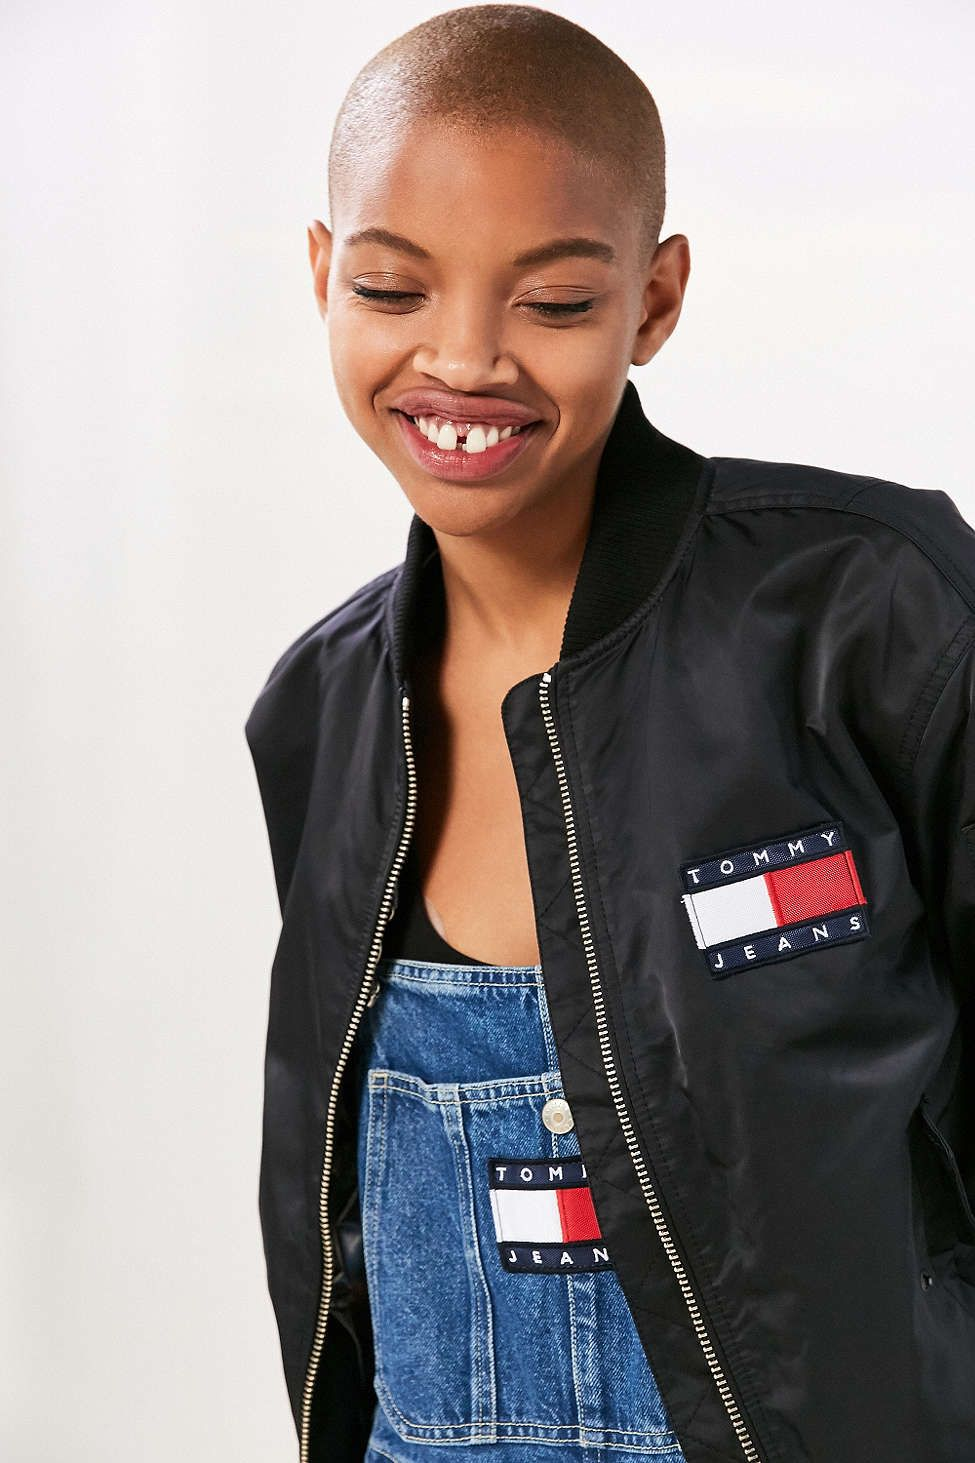 c1ee88c8b702a Tommy Jeans For UO 90s Bomber Jacket - Urban Outfitters | UO ...